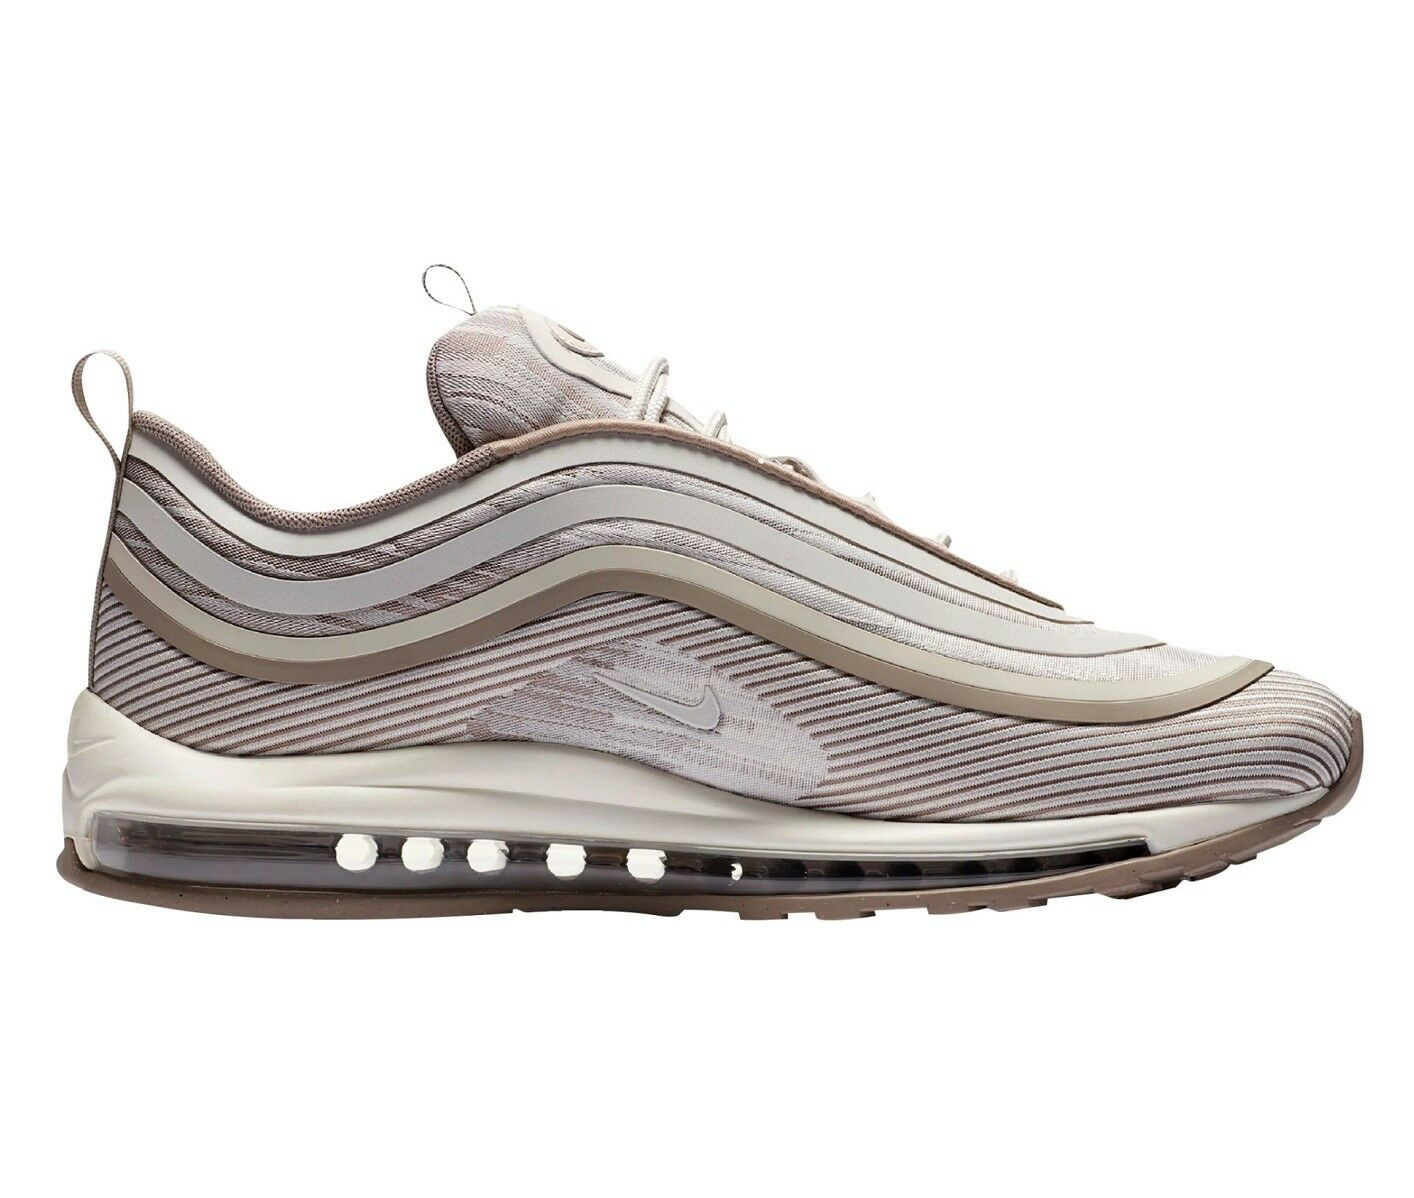 Nike Air Max 97 UL '17 Mens 918356-201 Sepia Stone Sand Running Shoes Size 12